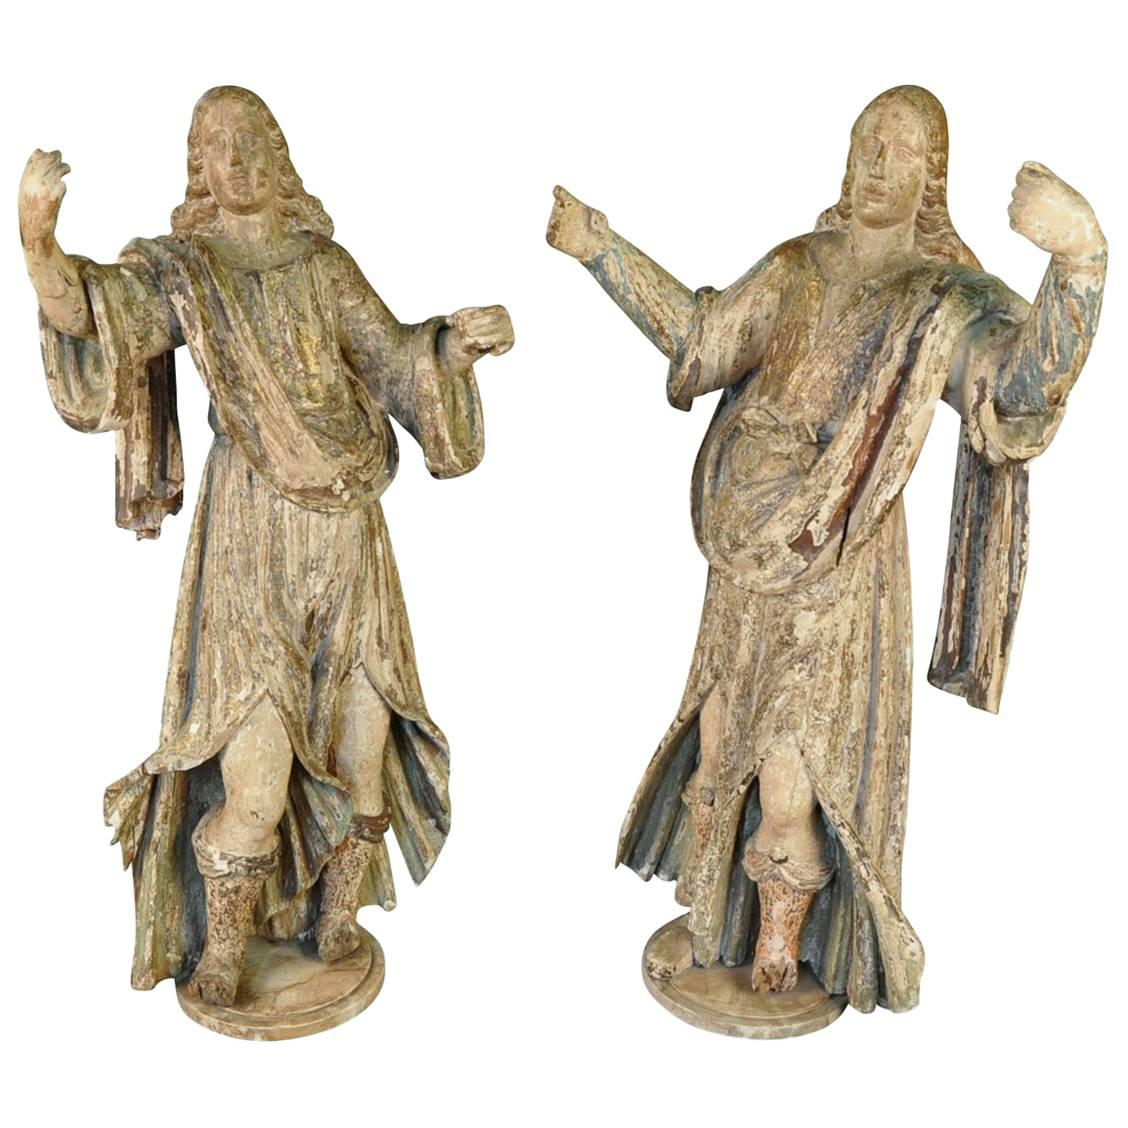 Pair of Outstanding 17th Century Italian Polychromed Musician Statues